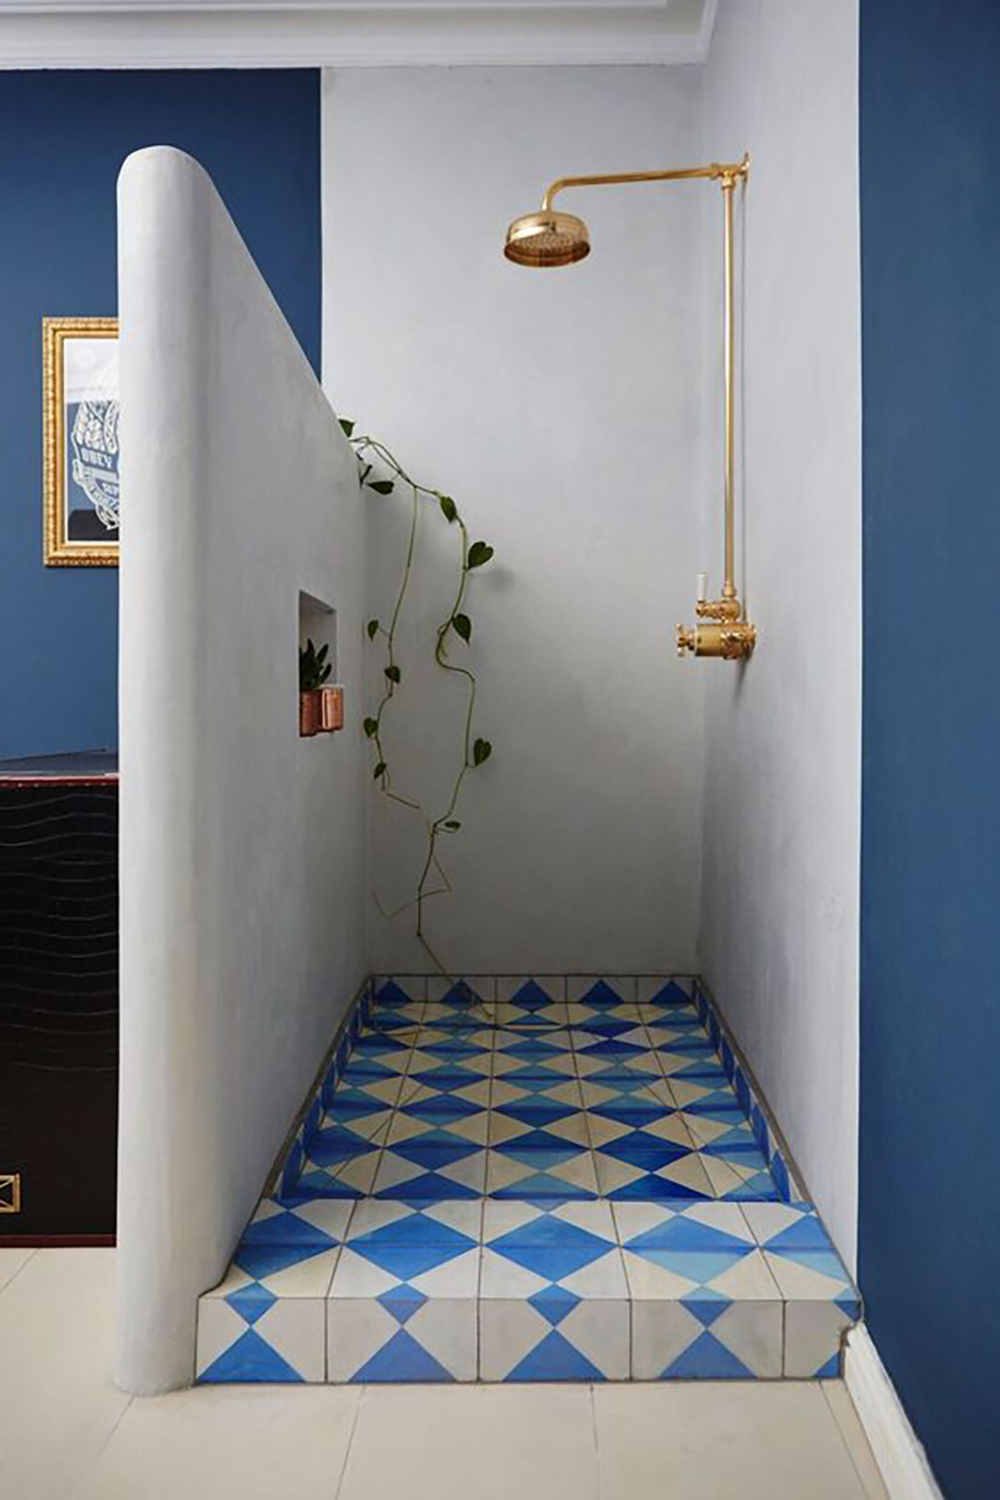 Moroccan styled shower with white & blue walls and tiles - 35 ideas for blue wall colour in home decoration | Aliz's Wonderland